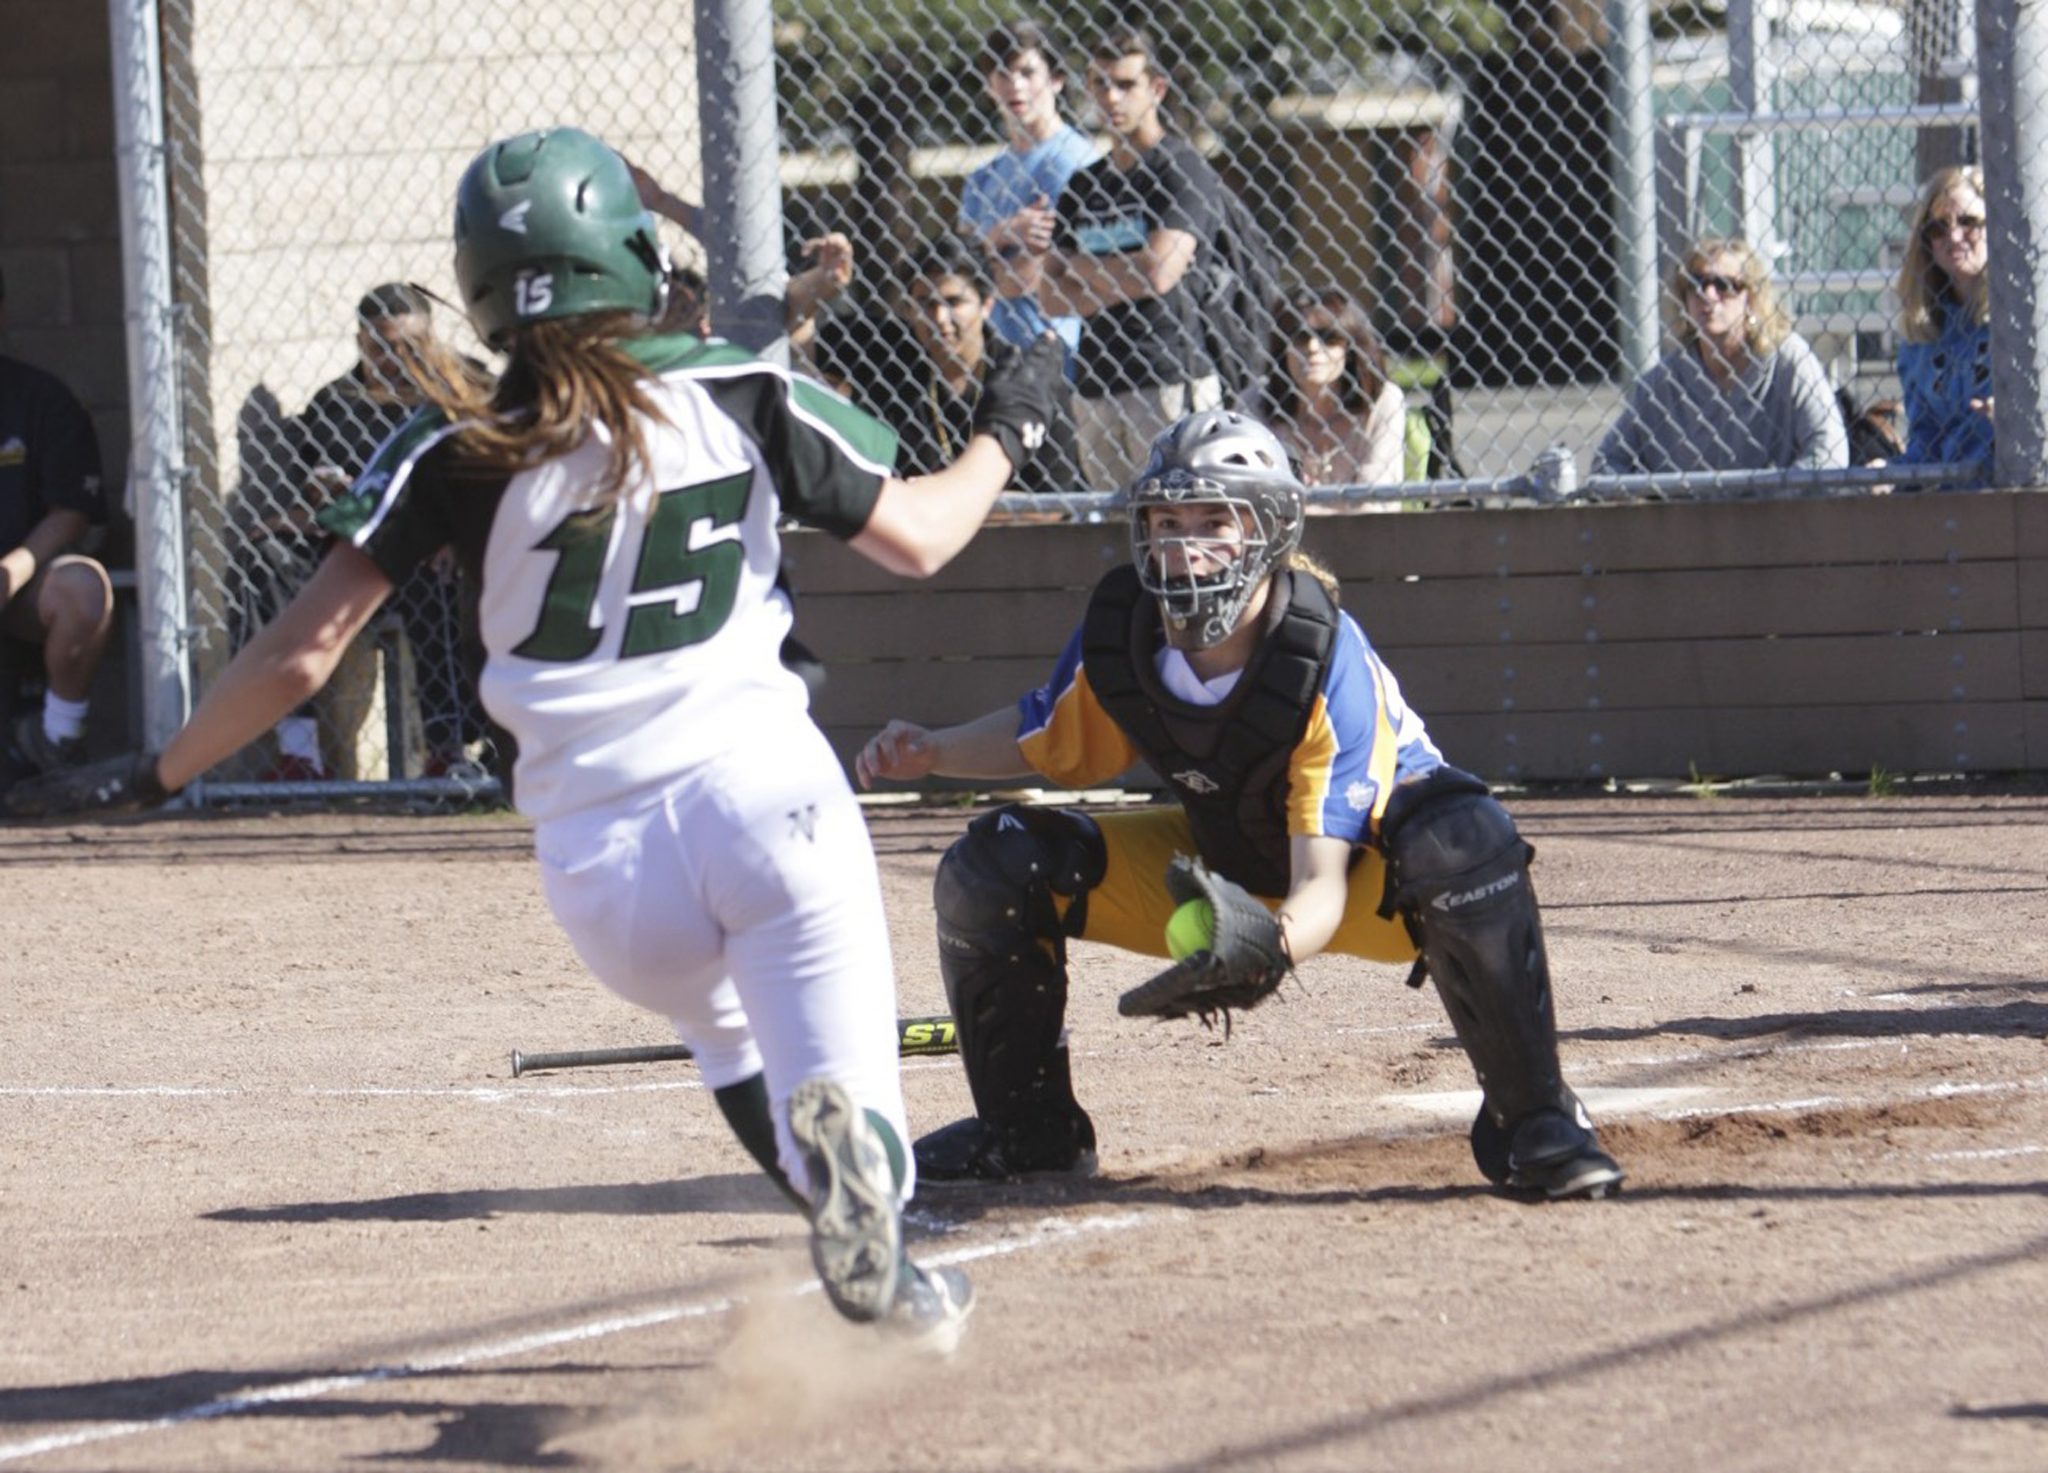 Alhambra senior catcher Cara DiMercurio awaits the sliding runner at home in the Bulldogs' 24-2 win over the Miramonte Matadors on Thursday, March 31, 2016. (MARK FIERNER / Martinez Tribune)